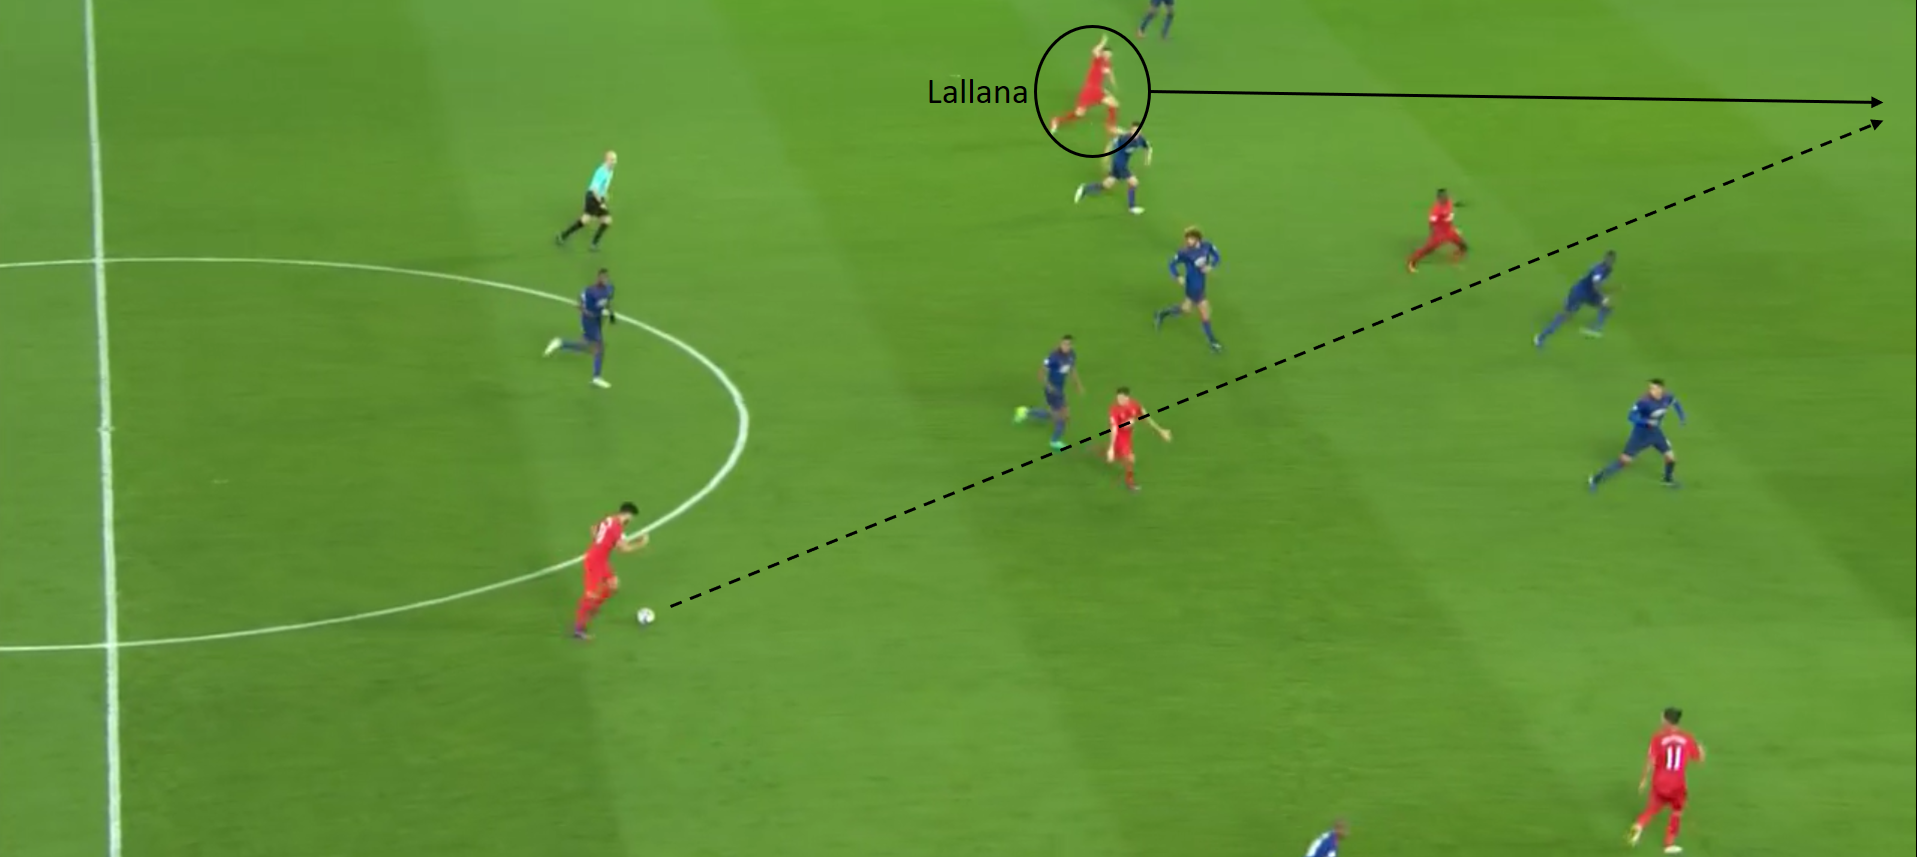 effect-of-lallana-3